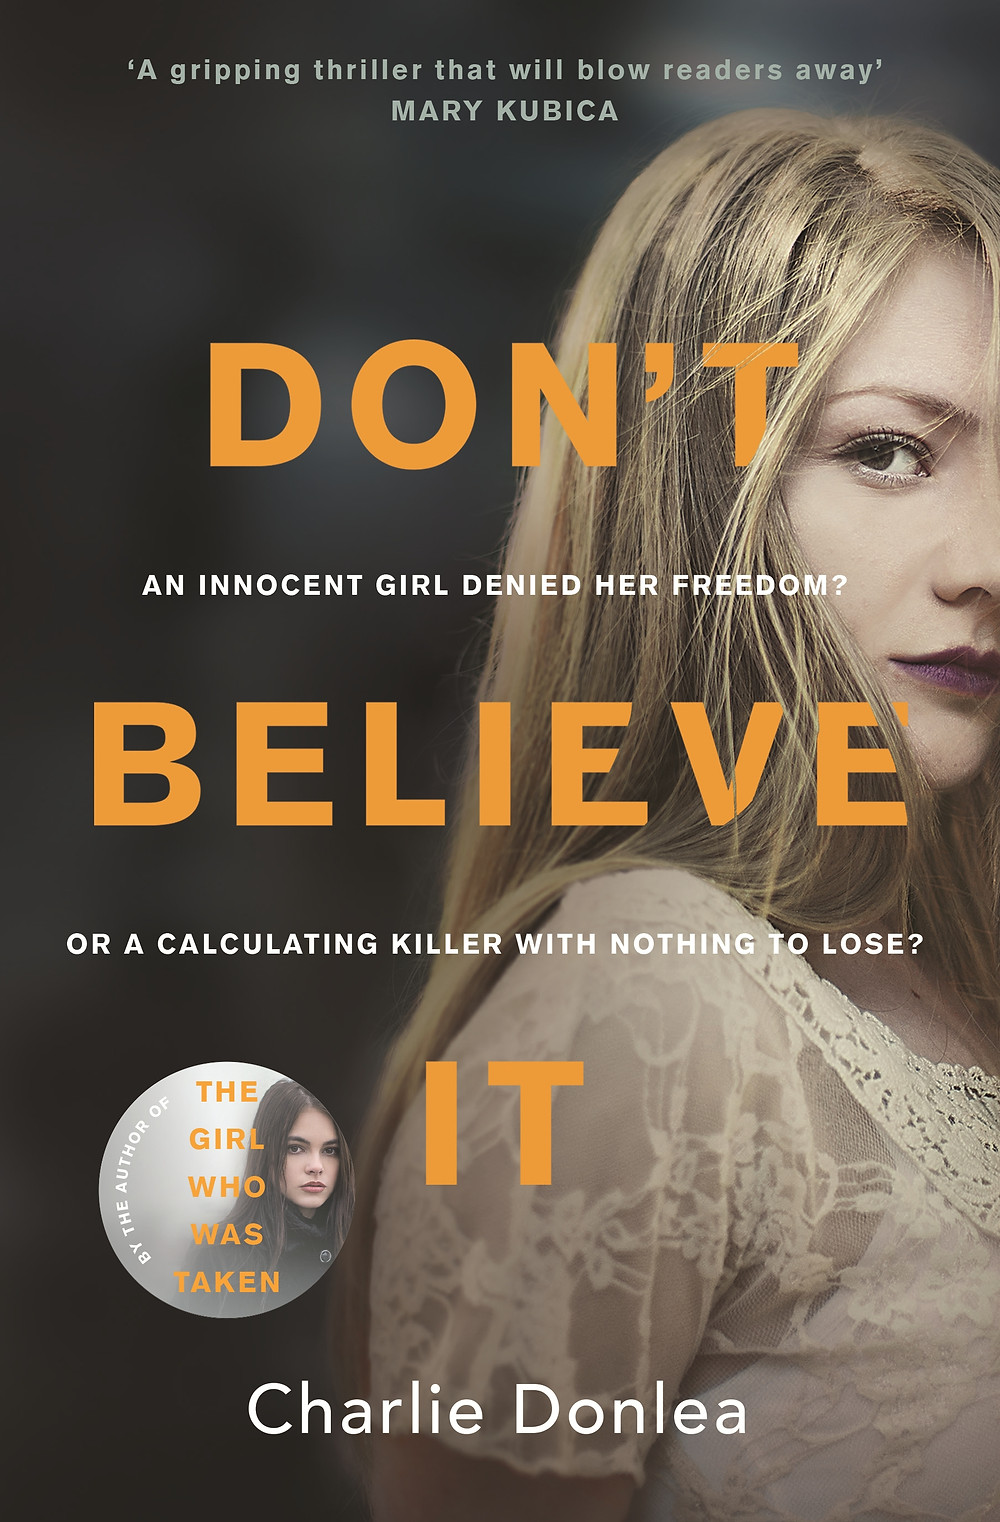 Don't Believe It (AU) On Sale Now!